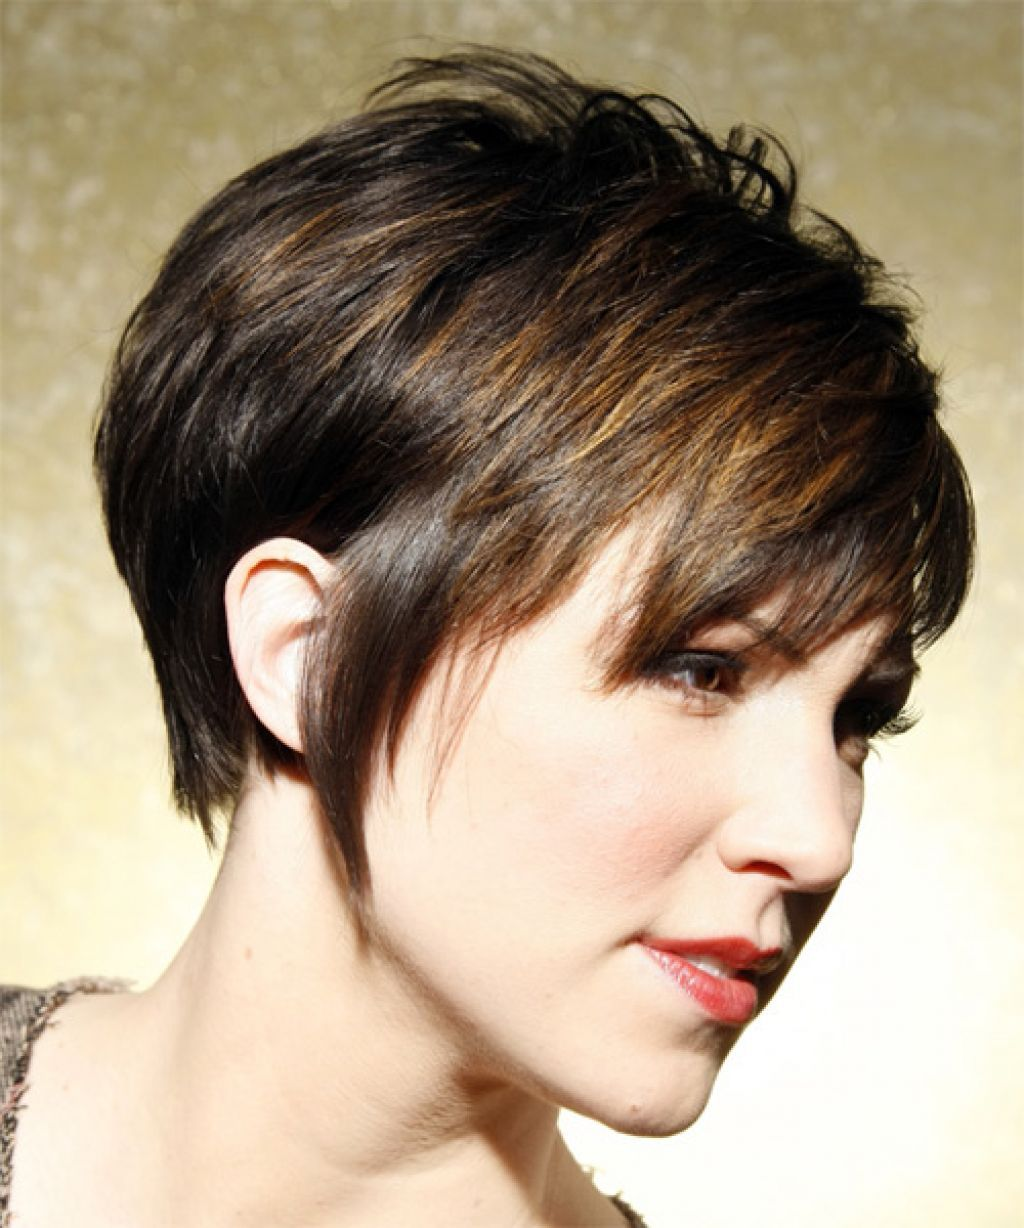 Back and front view of short haircuts google search shrt cuts